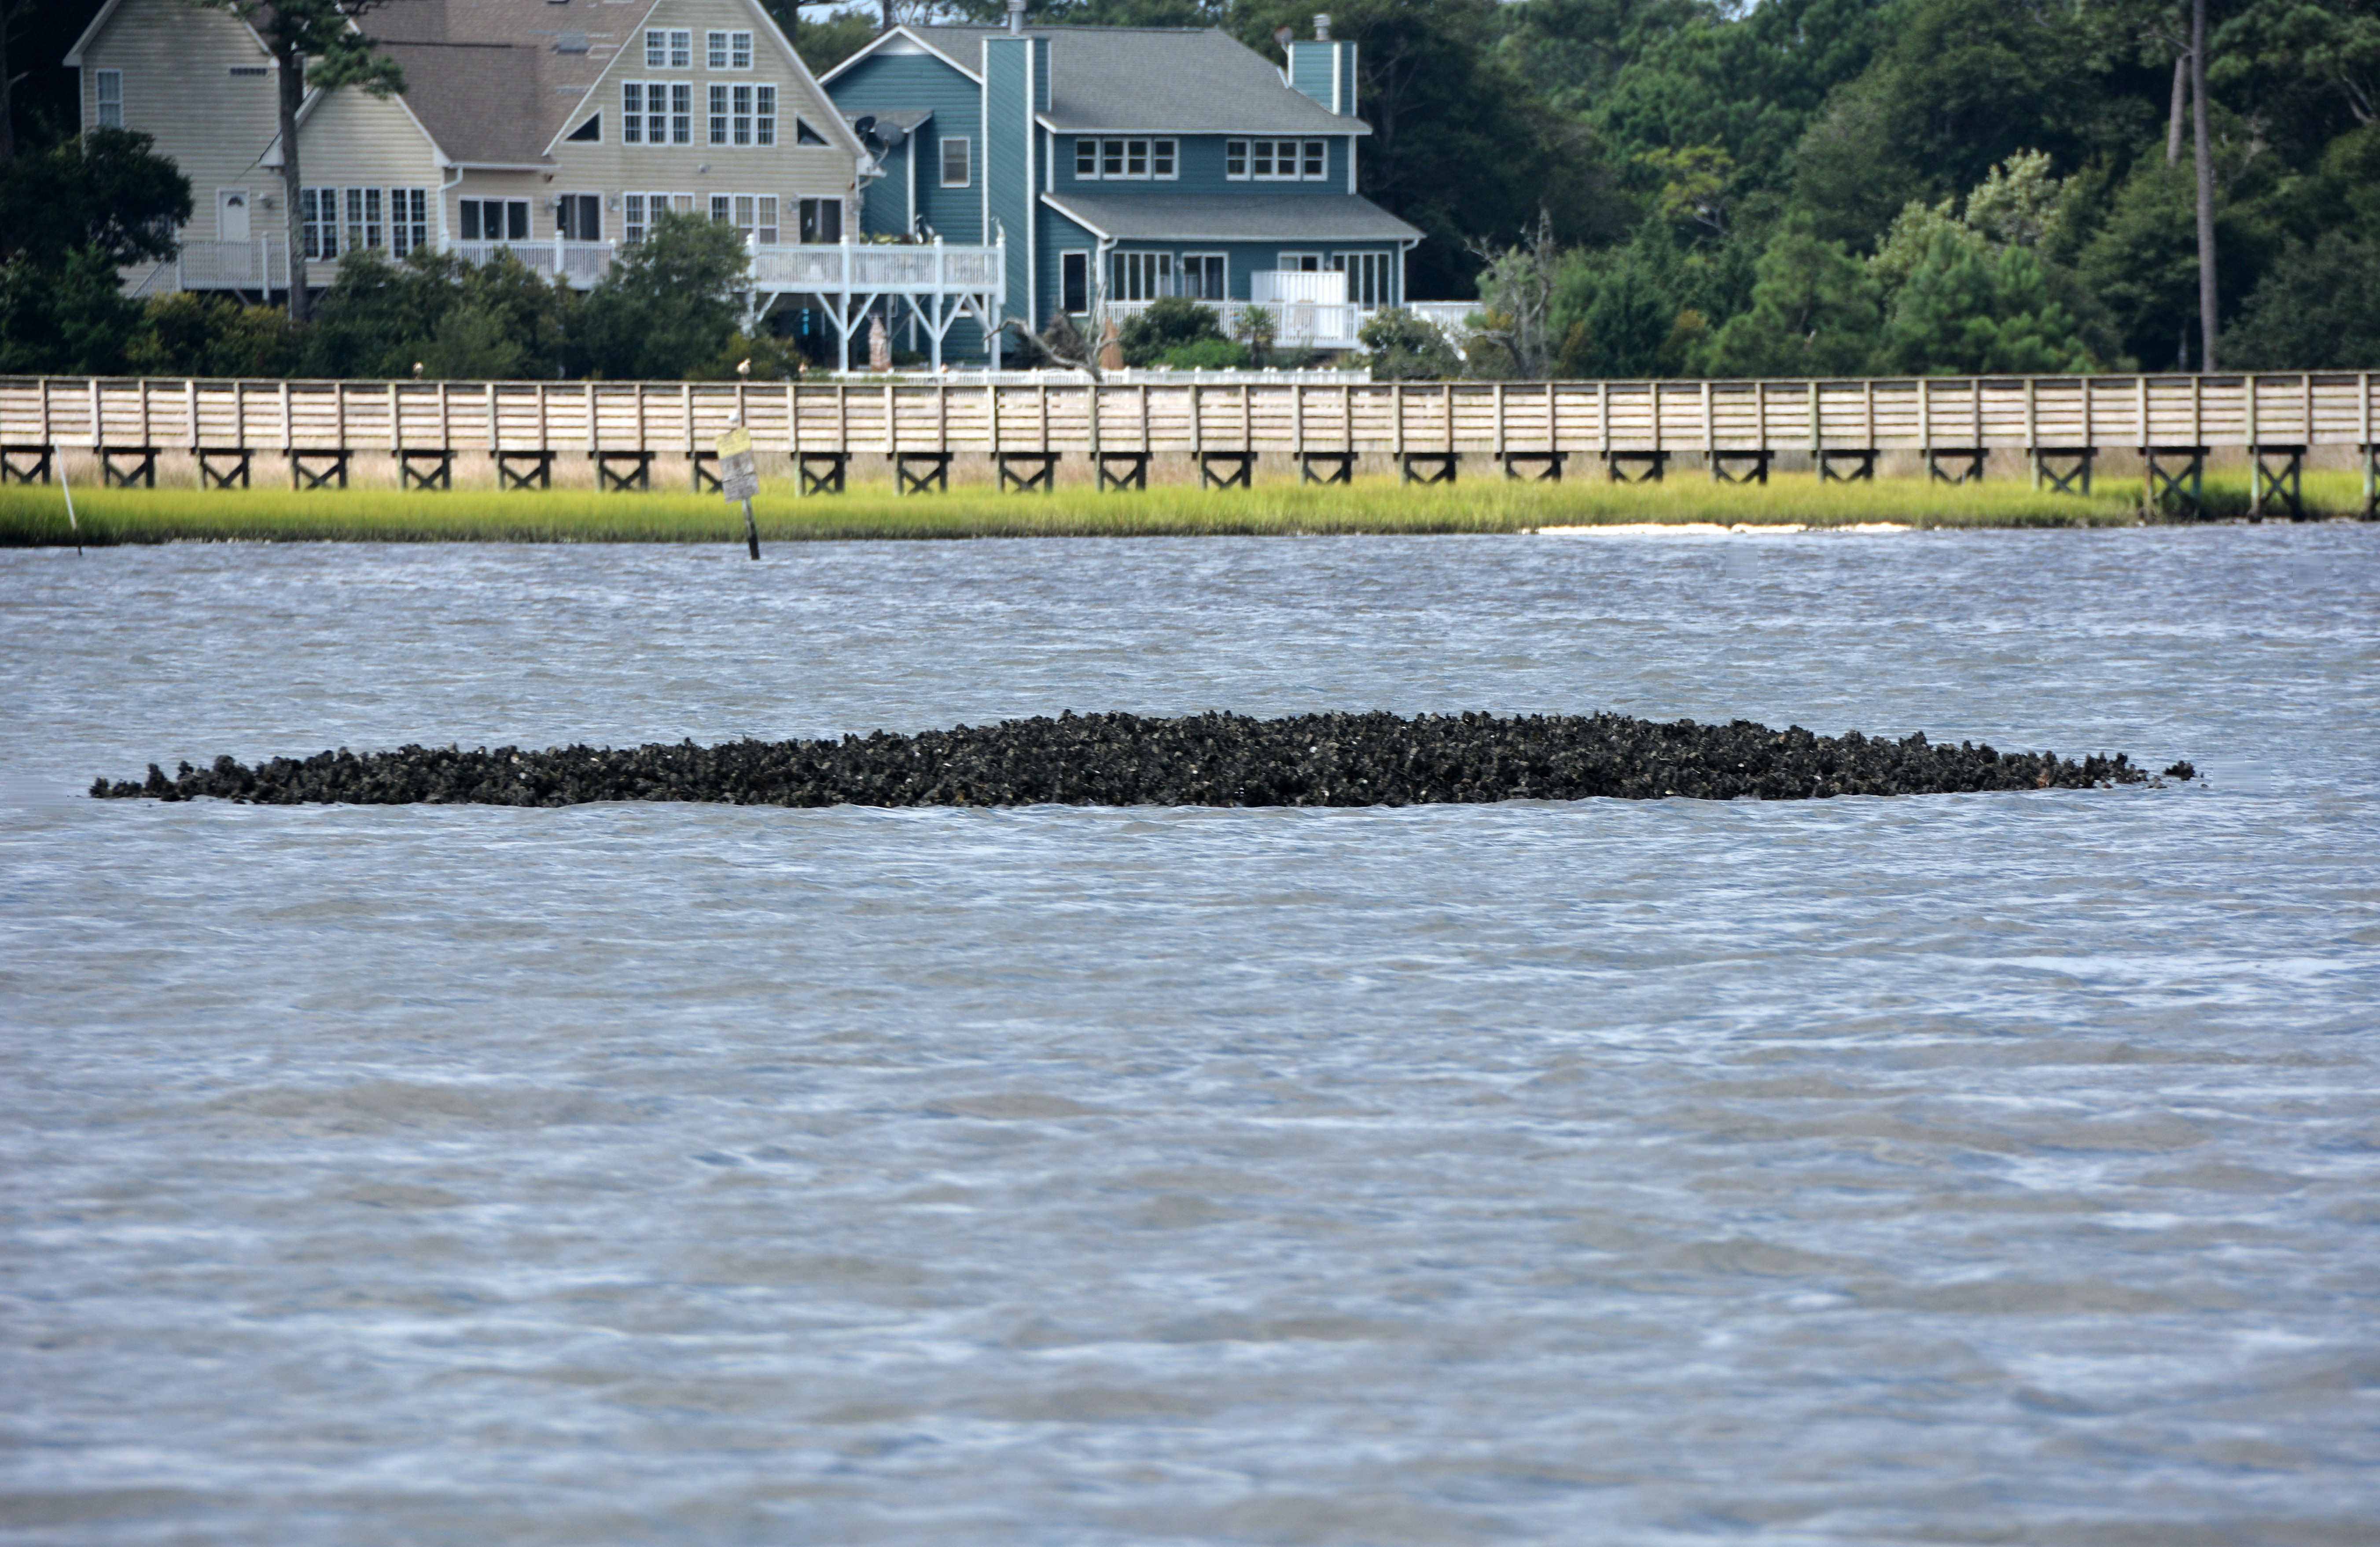 Bouge sound intra coastal waterway the natural history log dsc5699 publicscrutiny Images